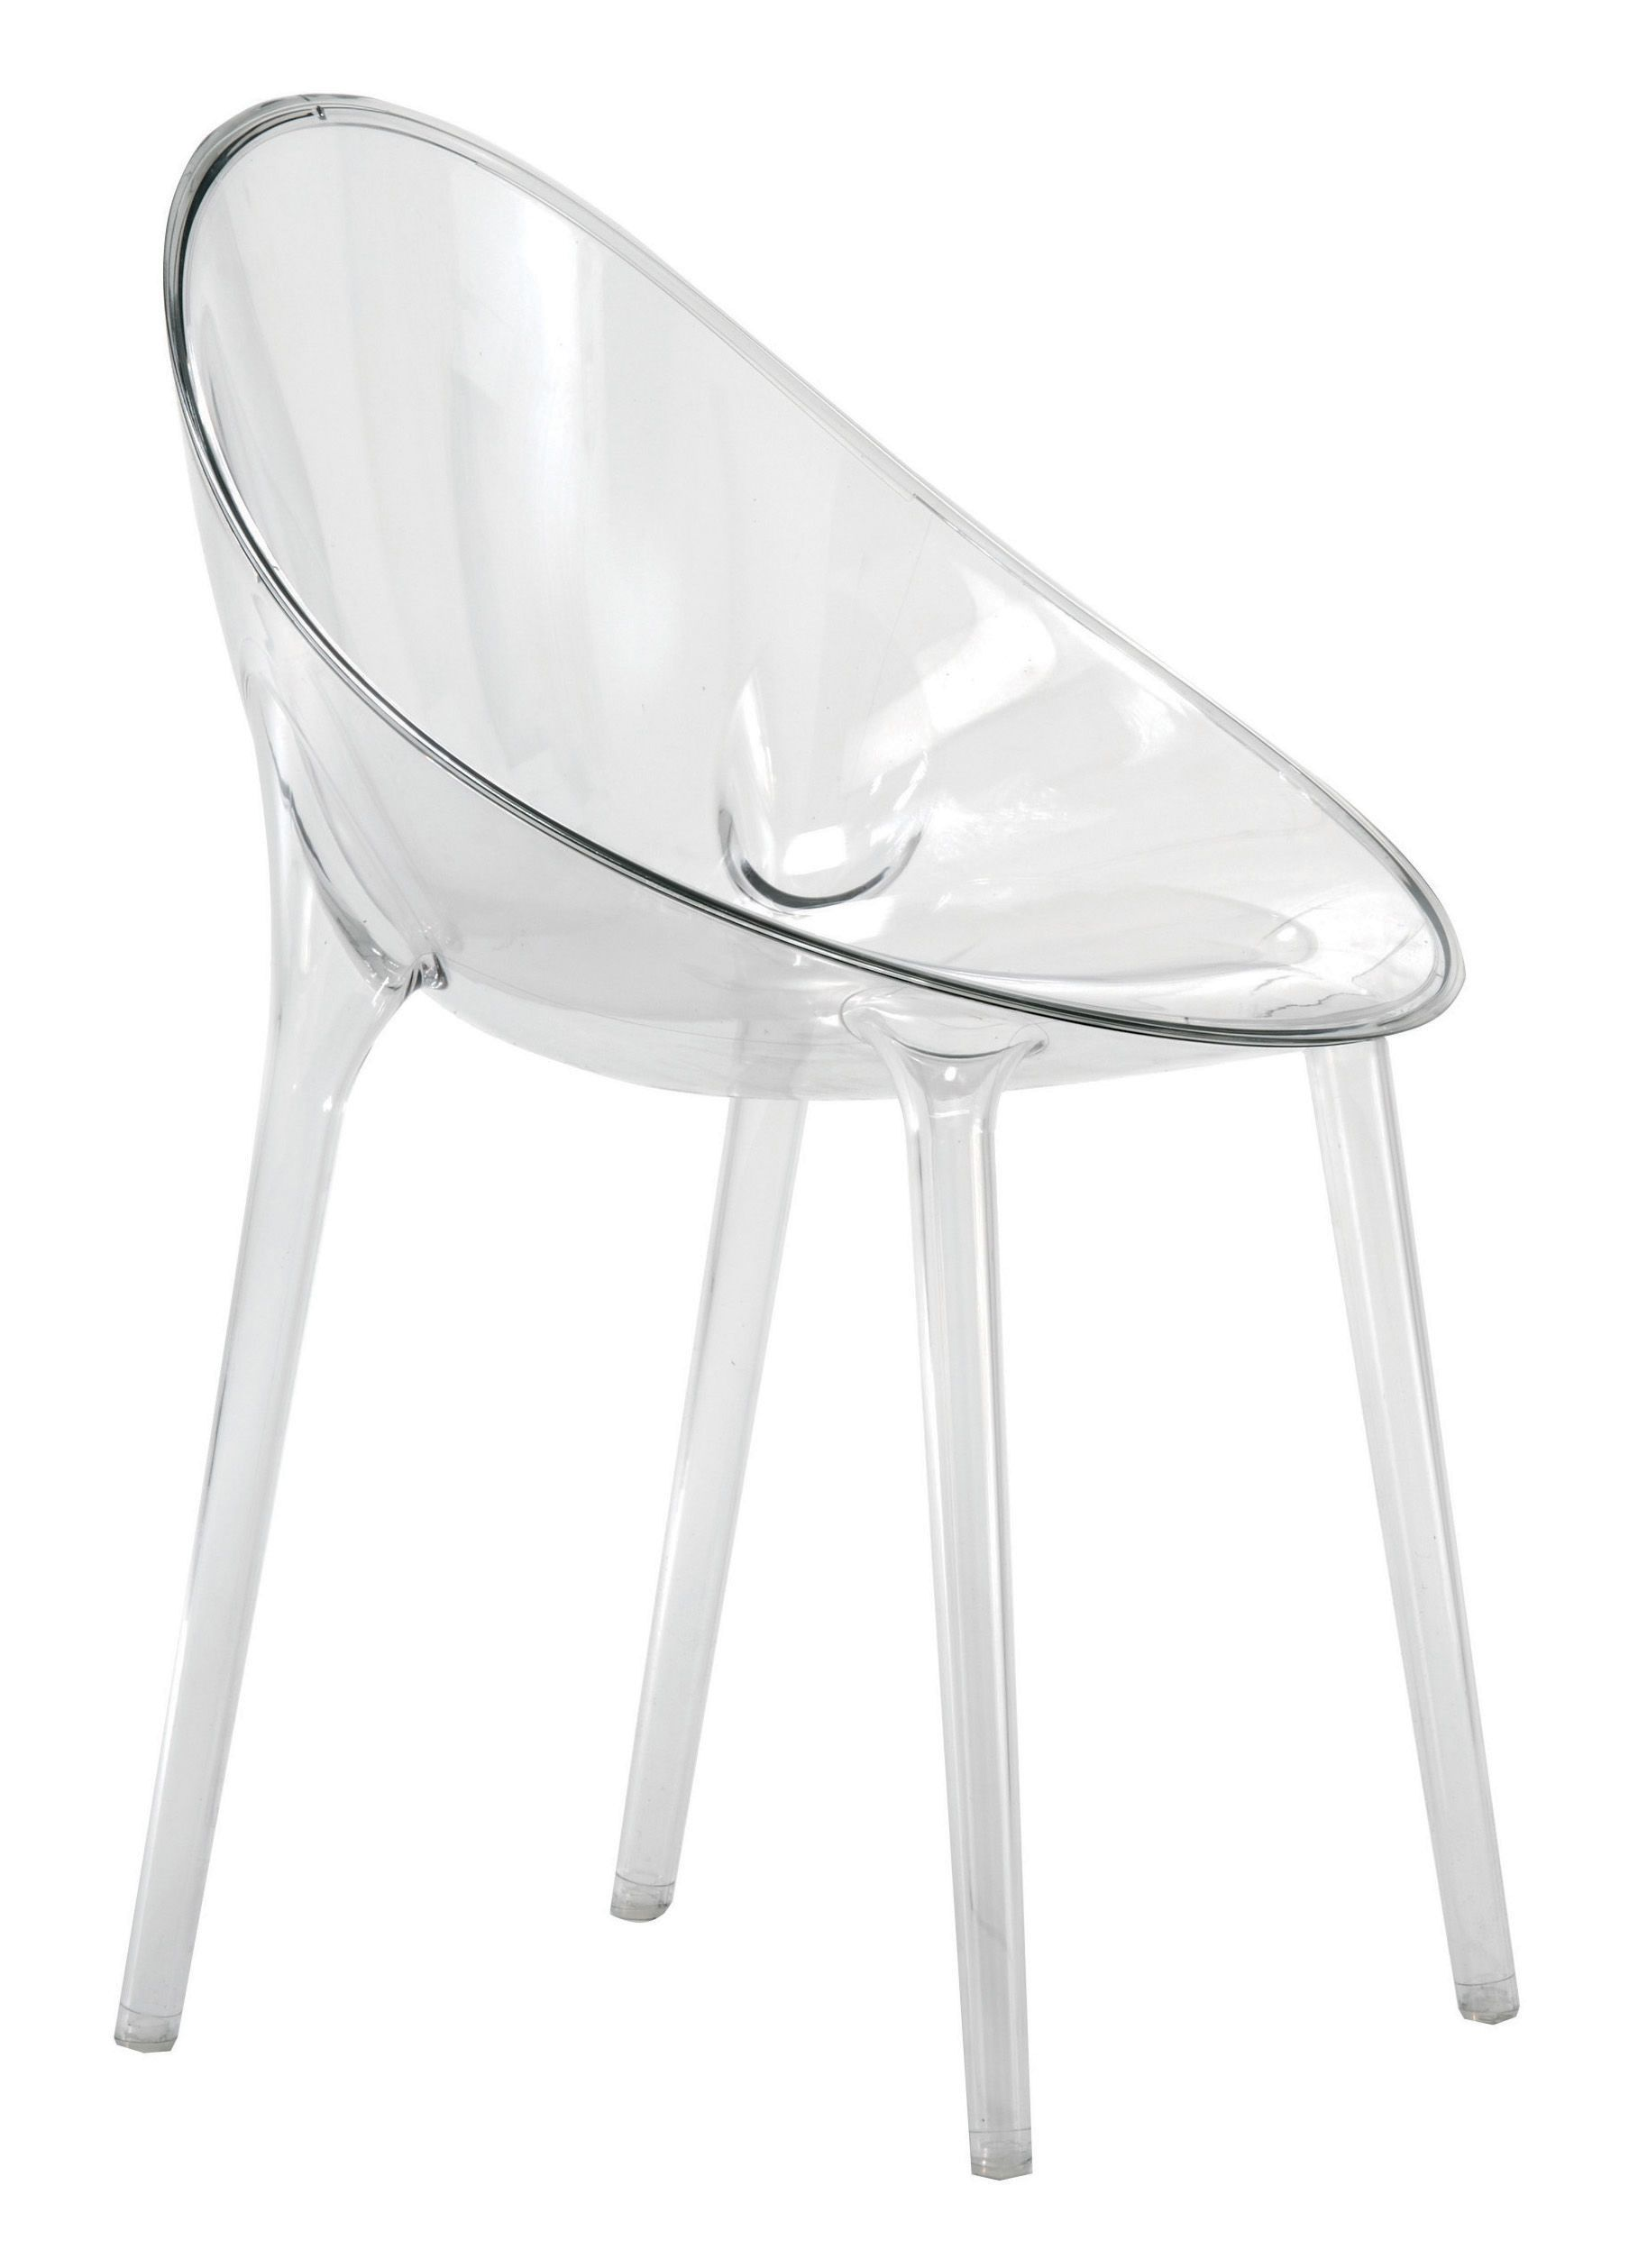 Fauteuil Mr Impossible Kartell Transparent Made In Design En 2020 Philippe Starck Kartell Kartell Chair